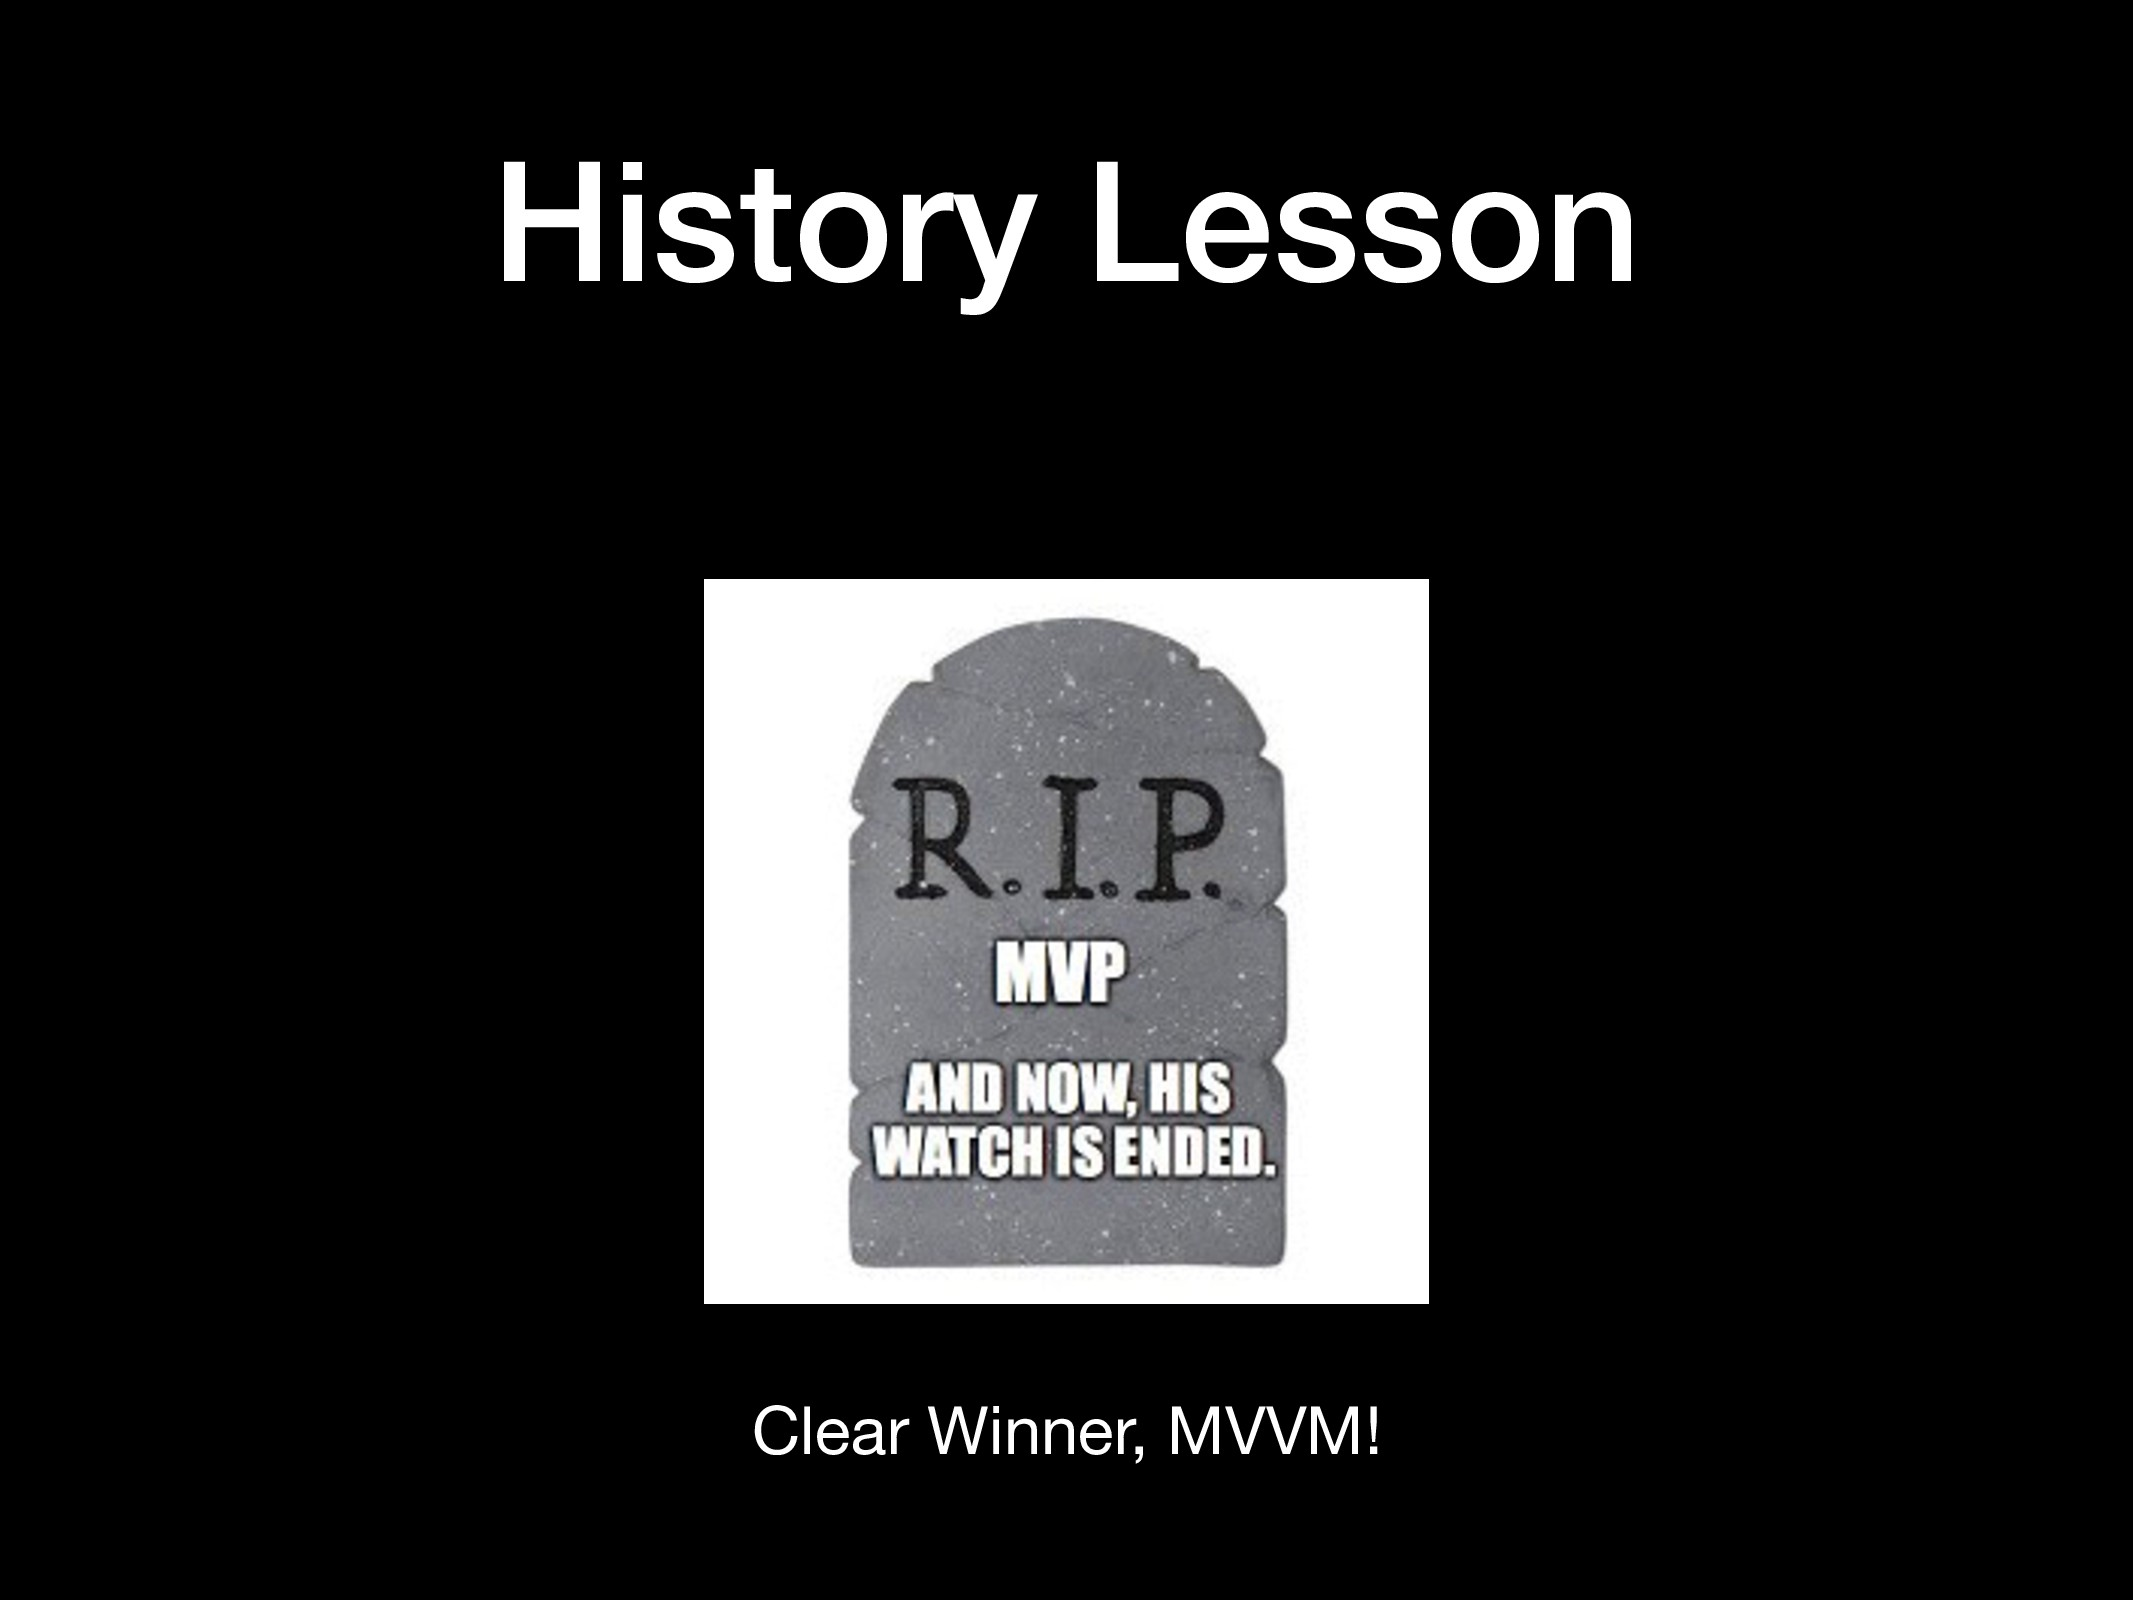 History Lesson Clear Winner, MVVM!